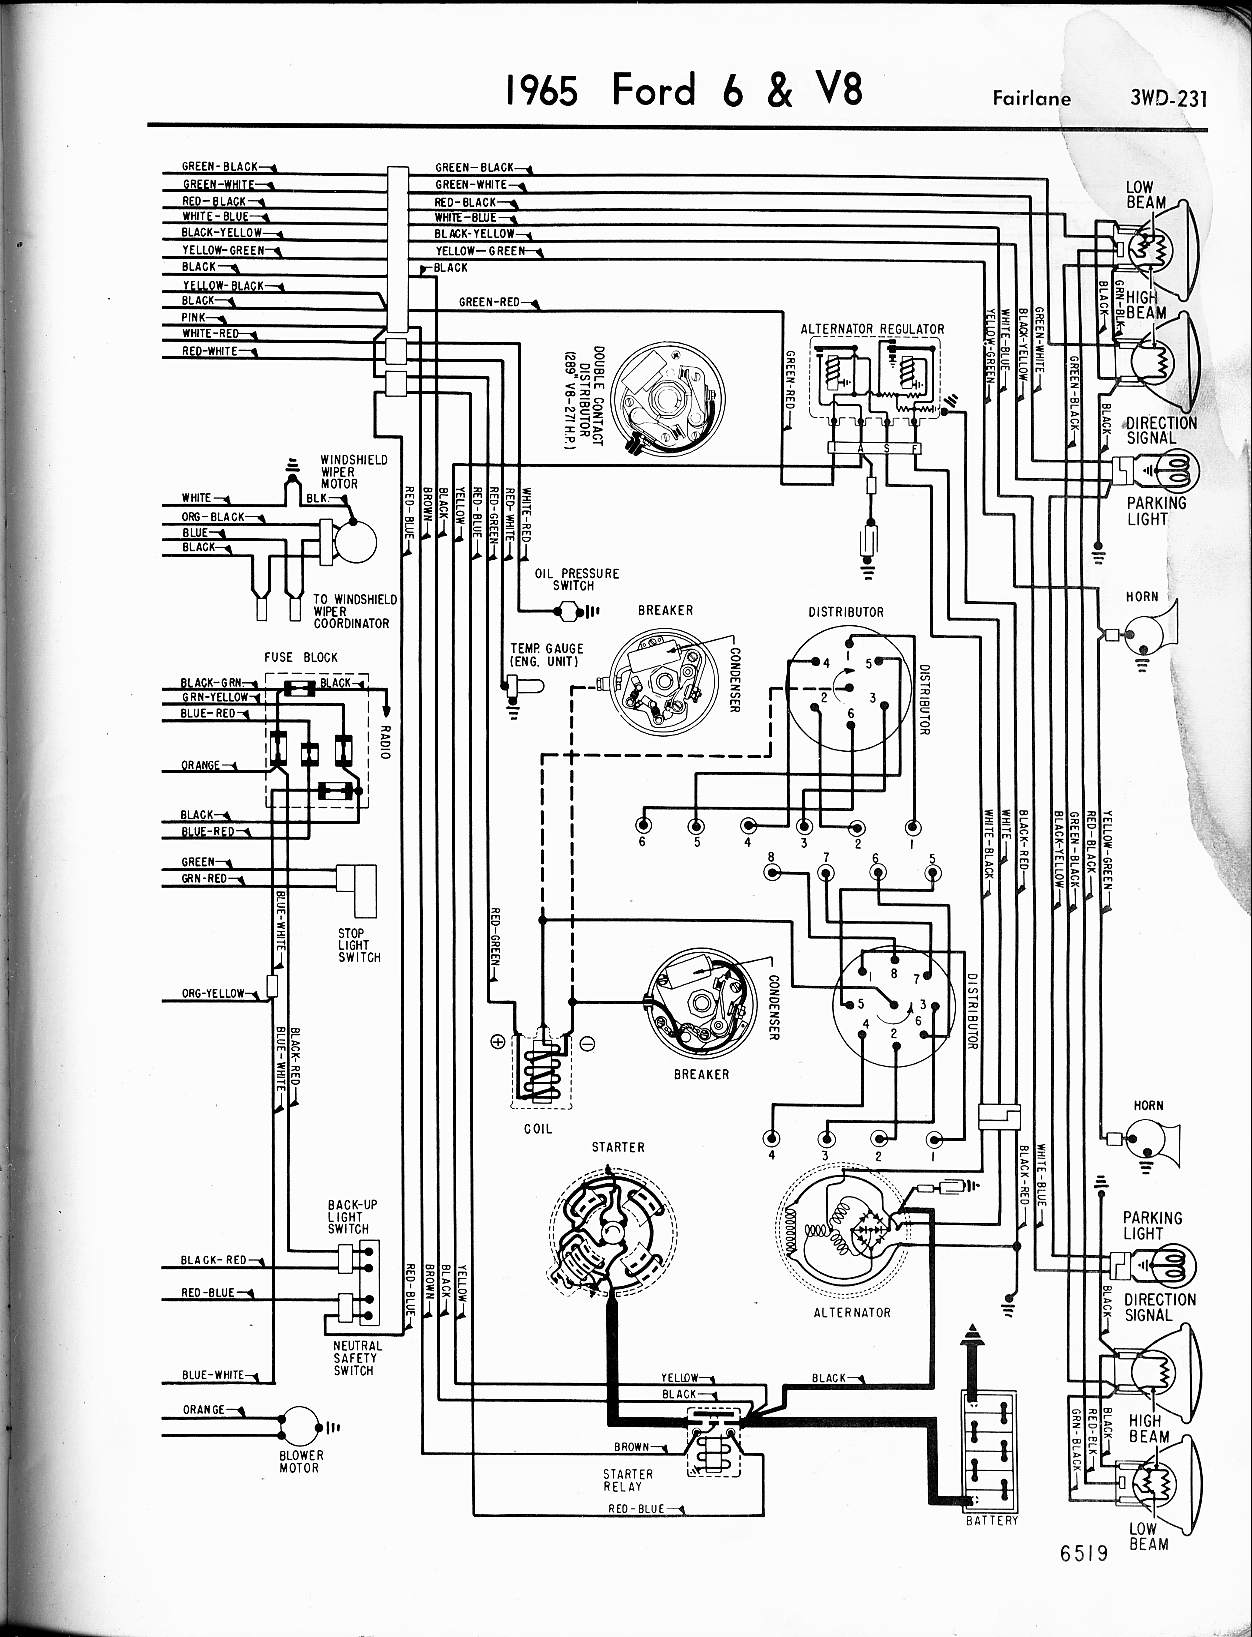 MWire5765 231 57 65 ford wiring diagrams 2007 ford 500 wiring diagram at fashall.co